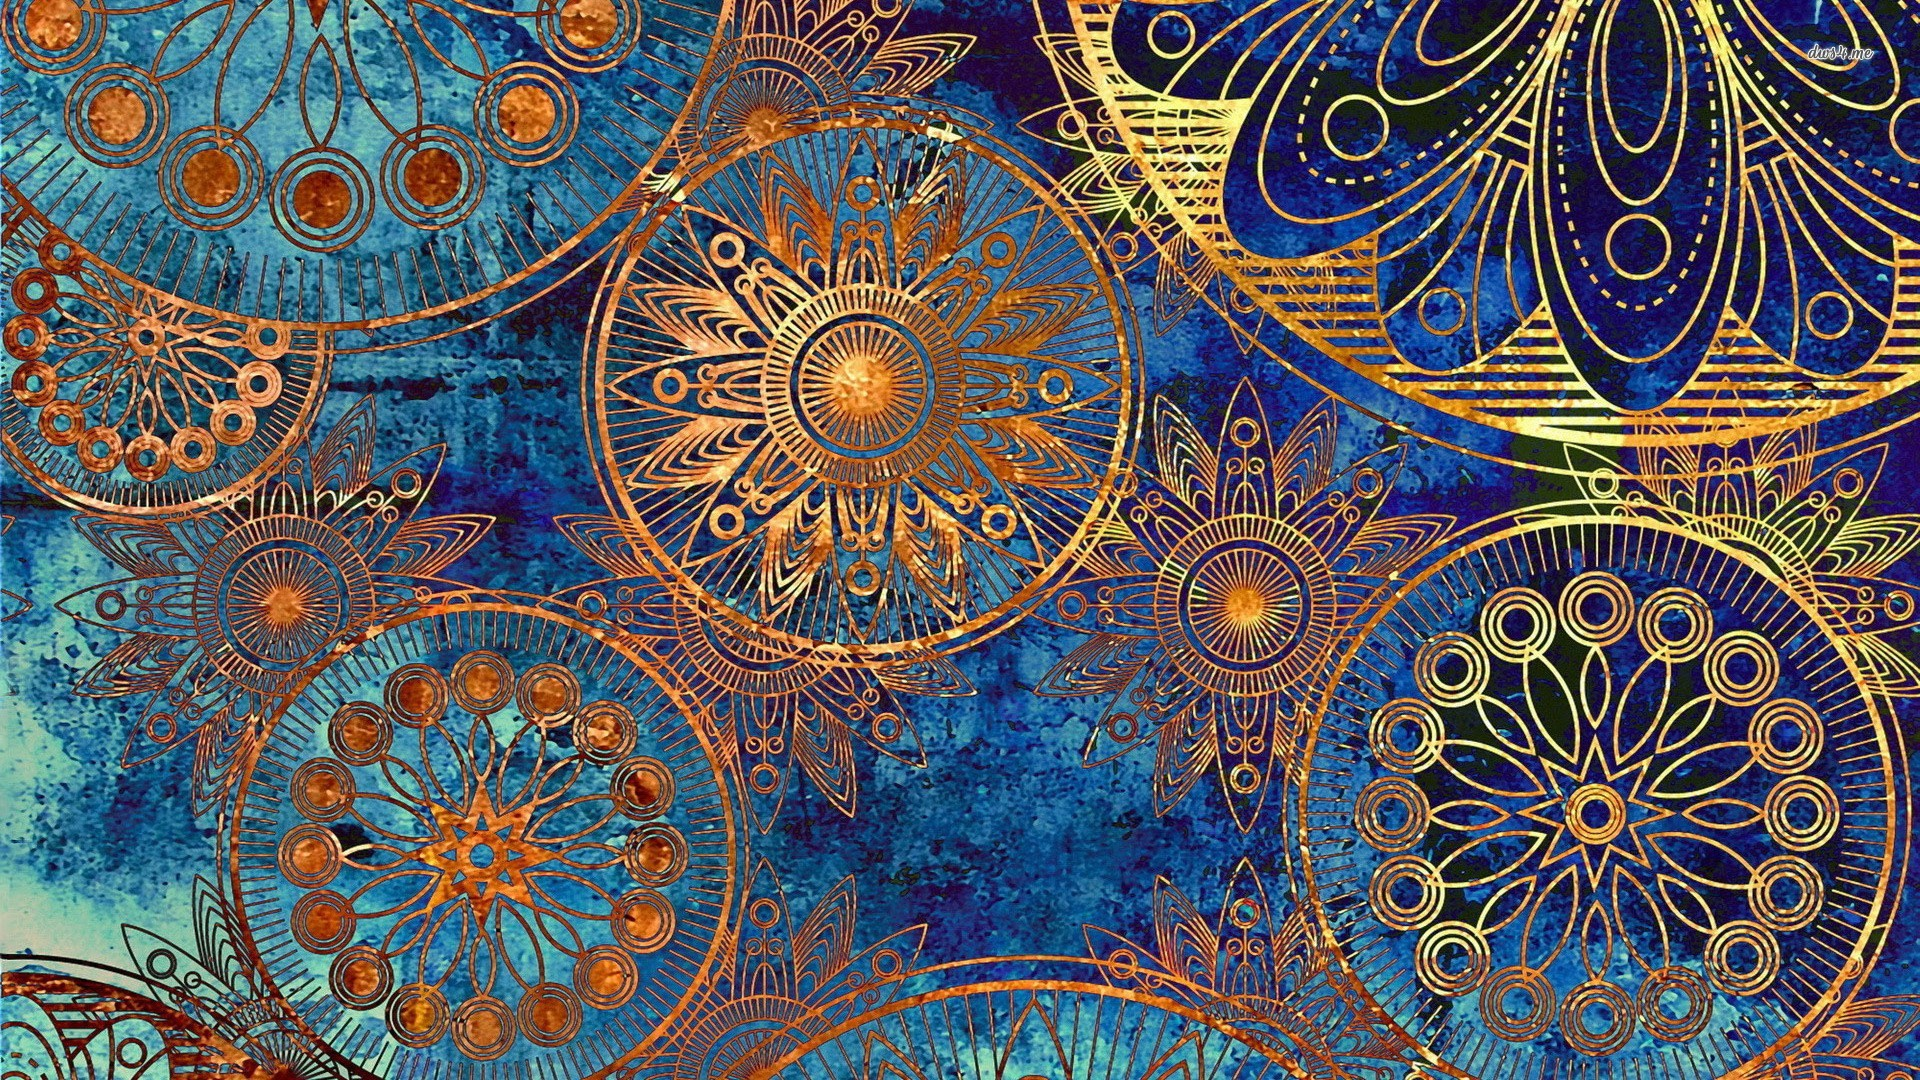 54 hippie backgrounds download free cool hd backgrounds for hippie voltagebd Choice Image